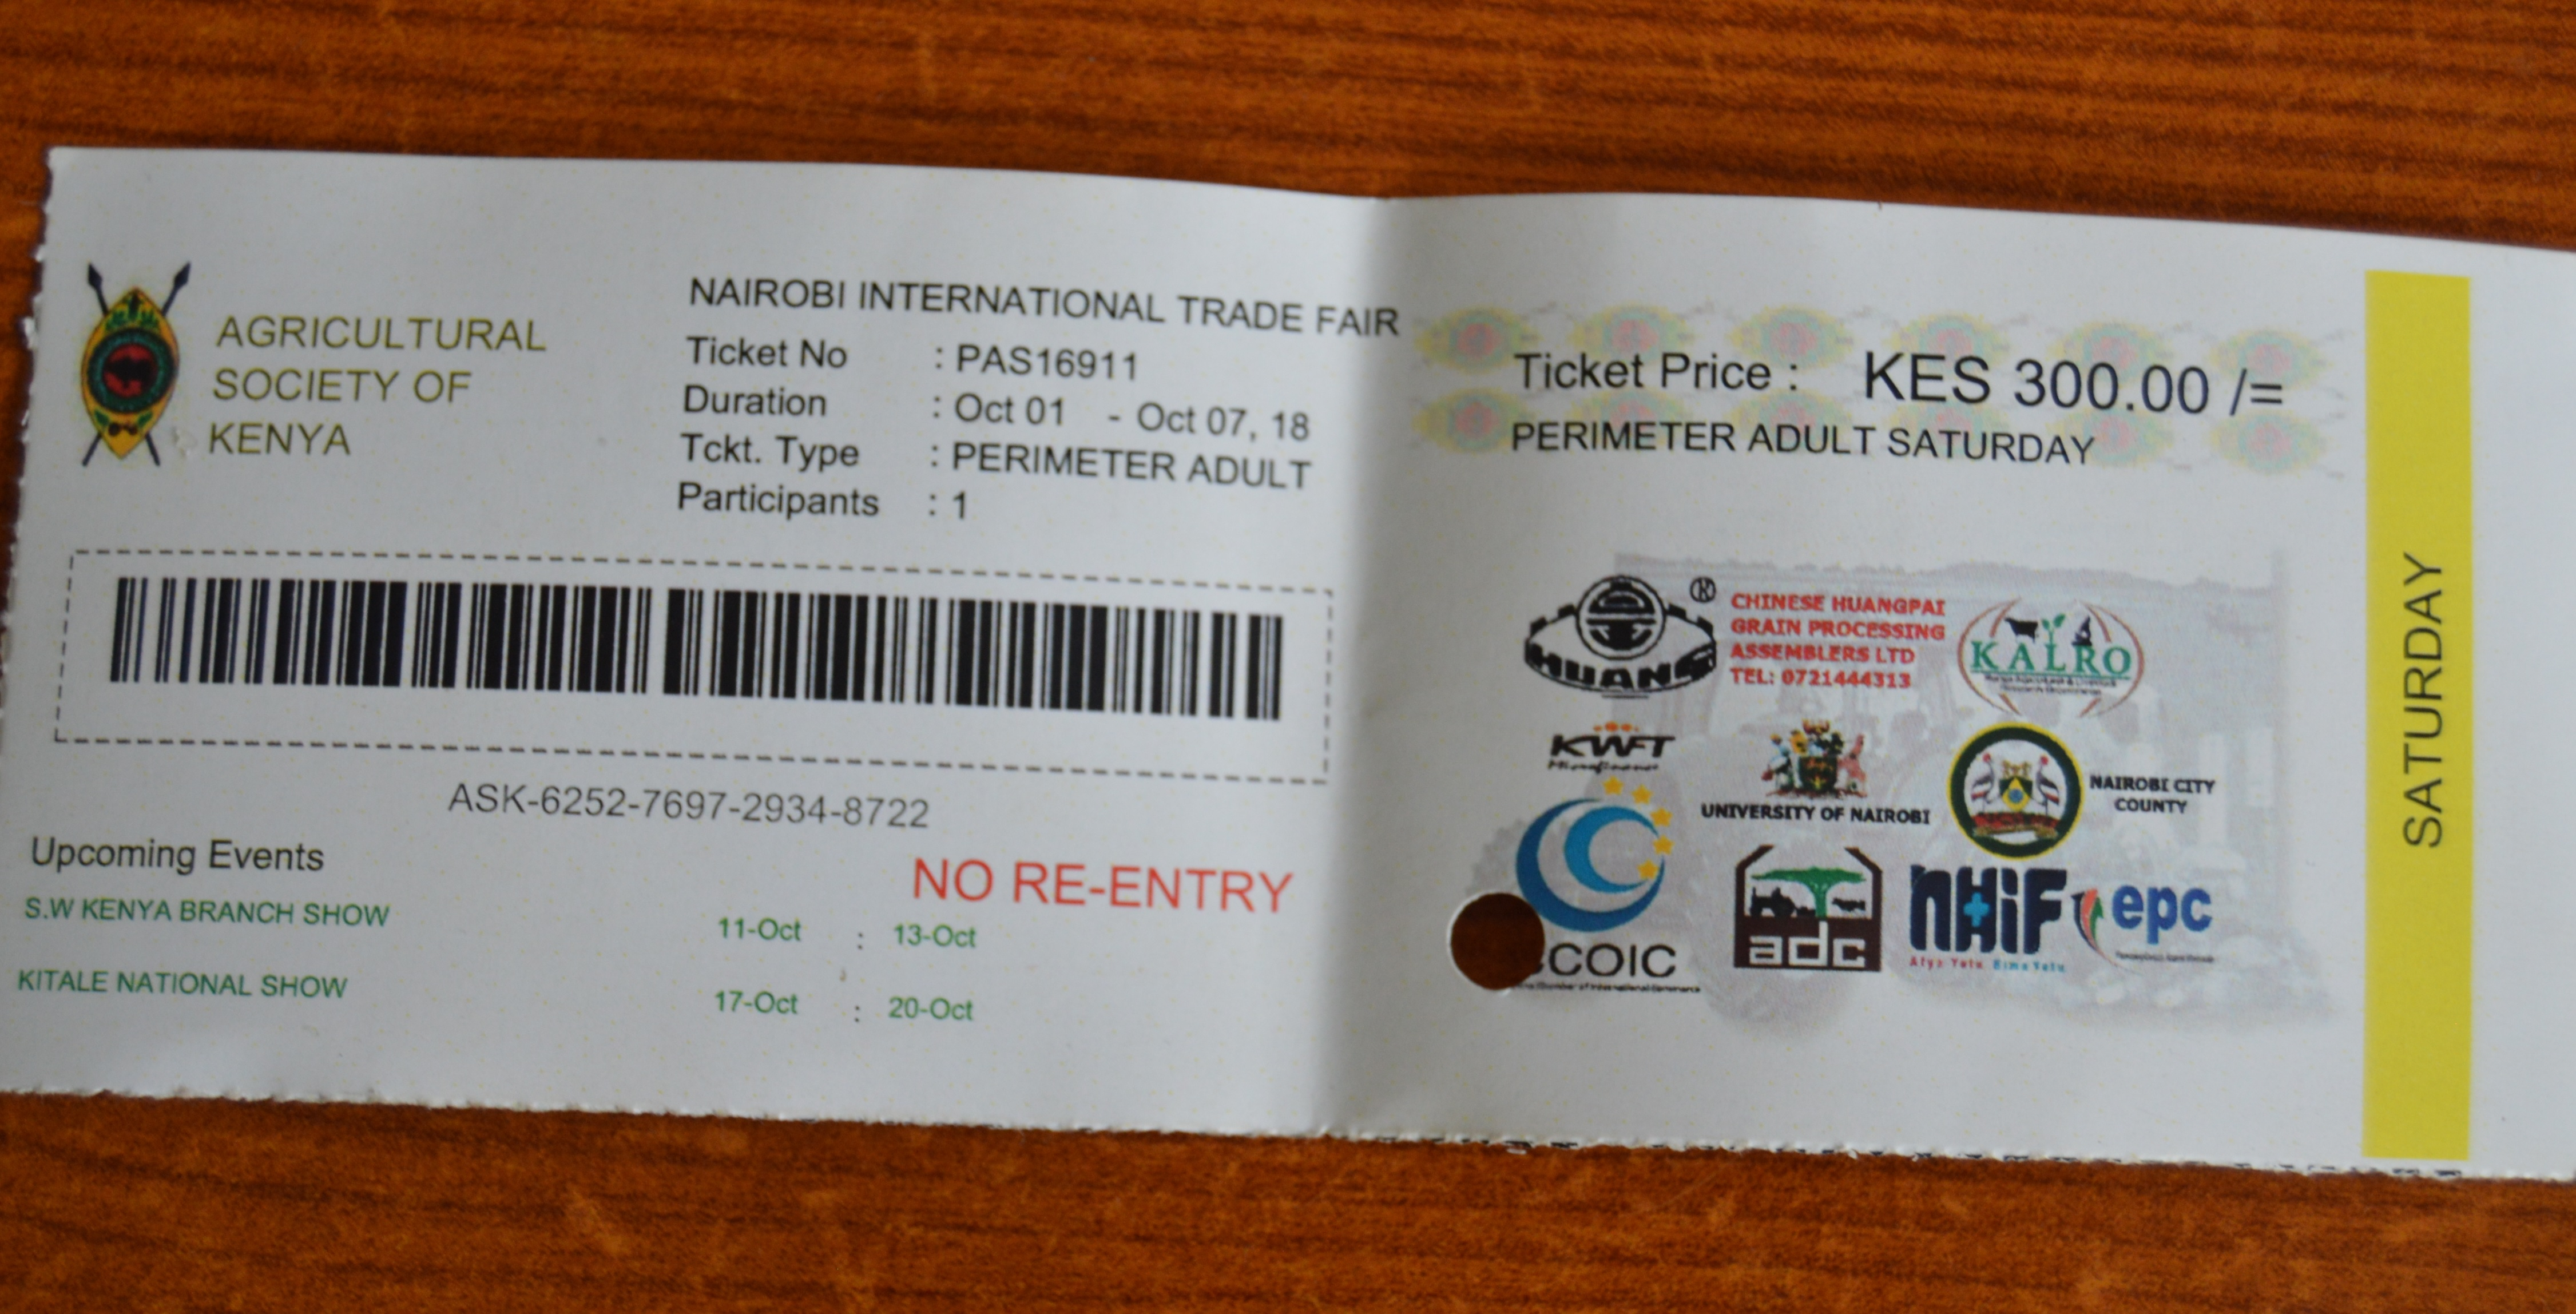 Ticket required to gain entry into the trade fair.